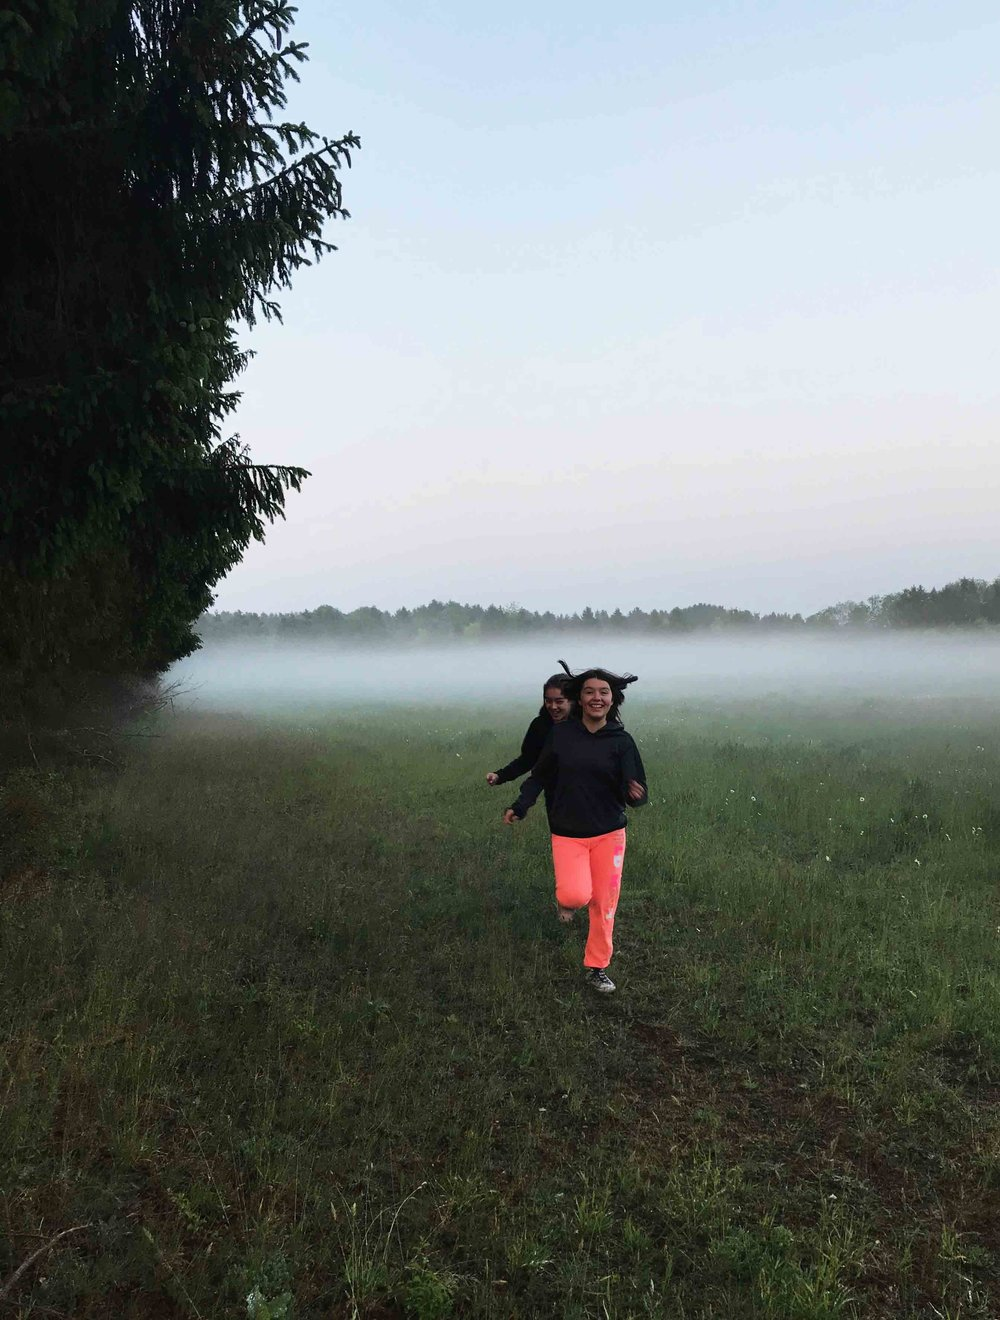 My girls running through the misty meadows.